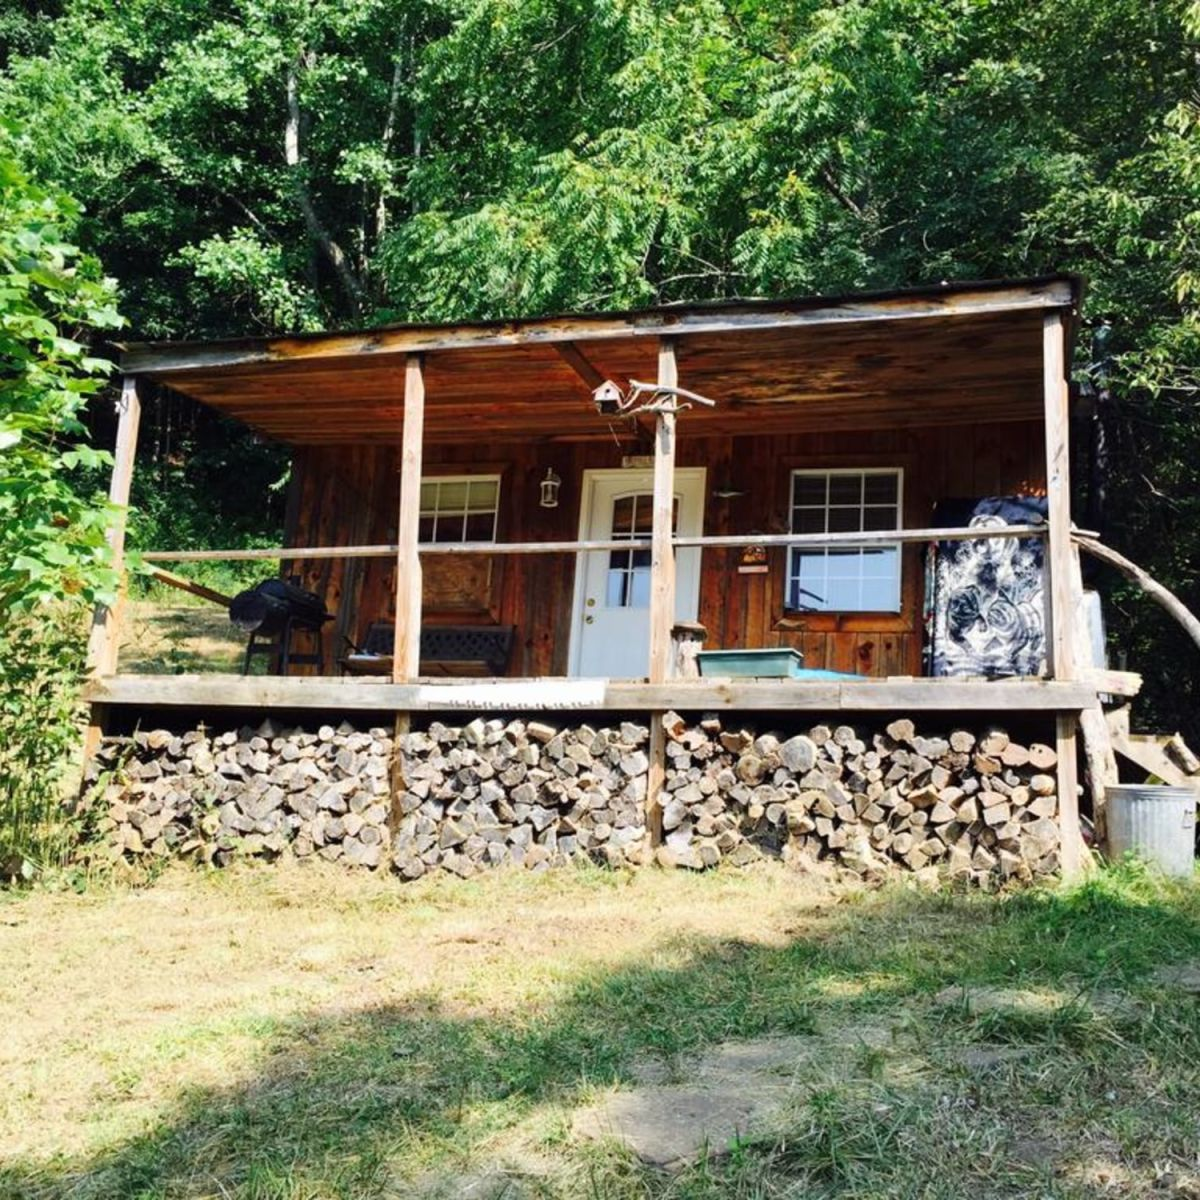 Wondrous Tiny Home In The Mountains Tiny House For Sale In Bakersville North Carolina Tiny House Listings Download Free Architecture Designs Remcamadebymaigaardcom